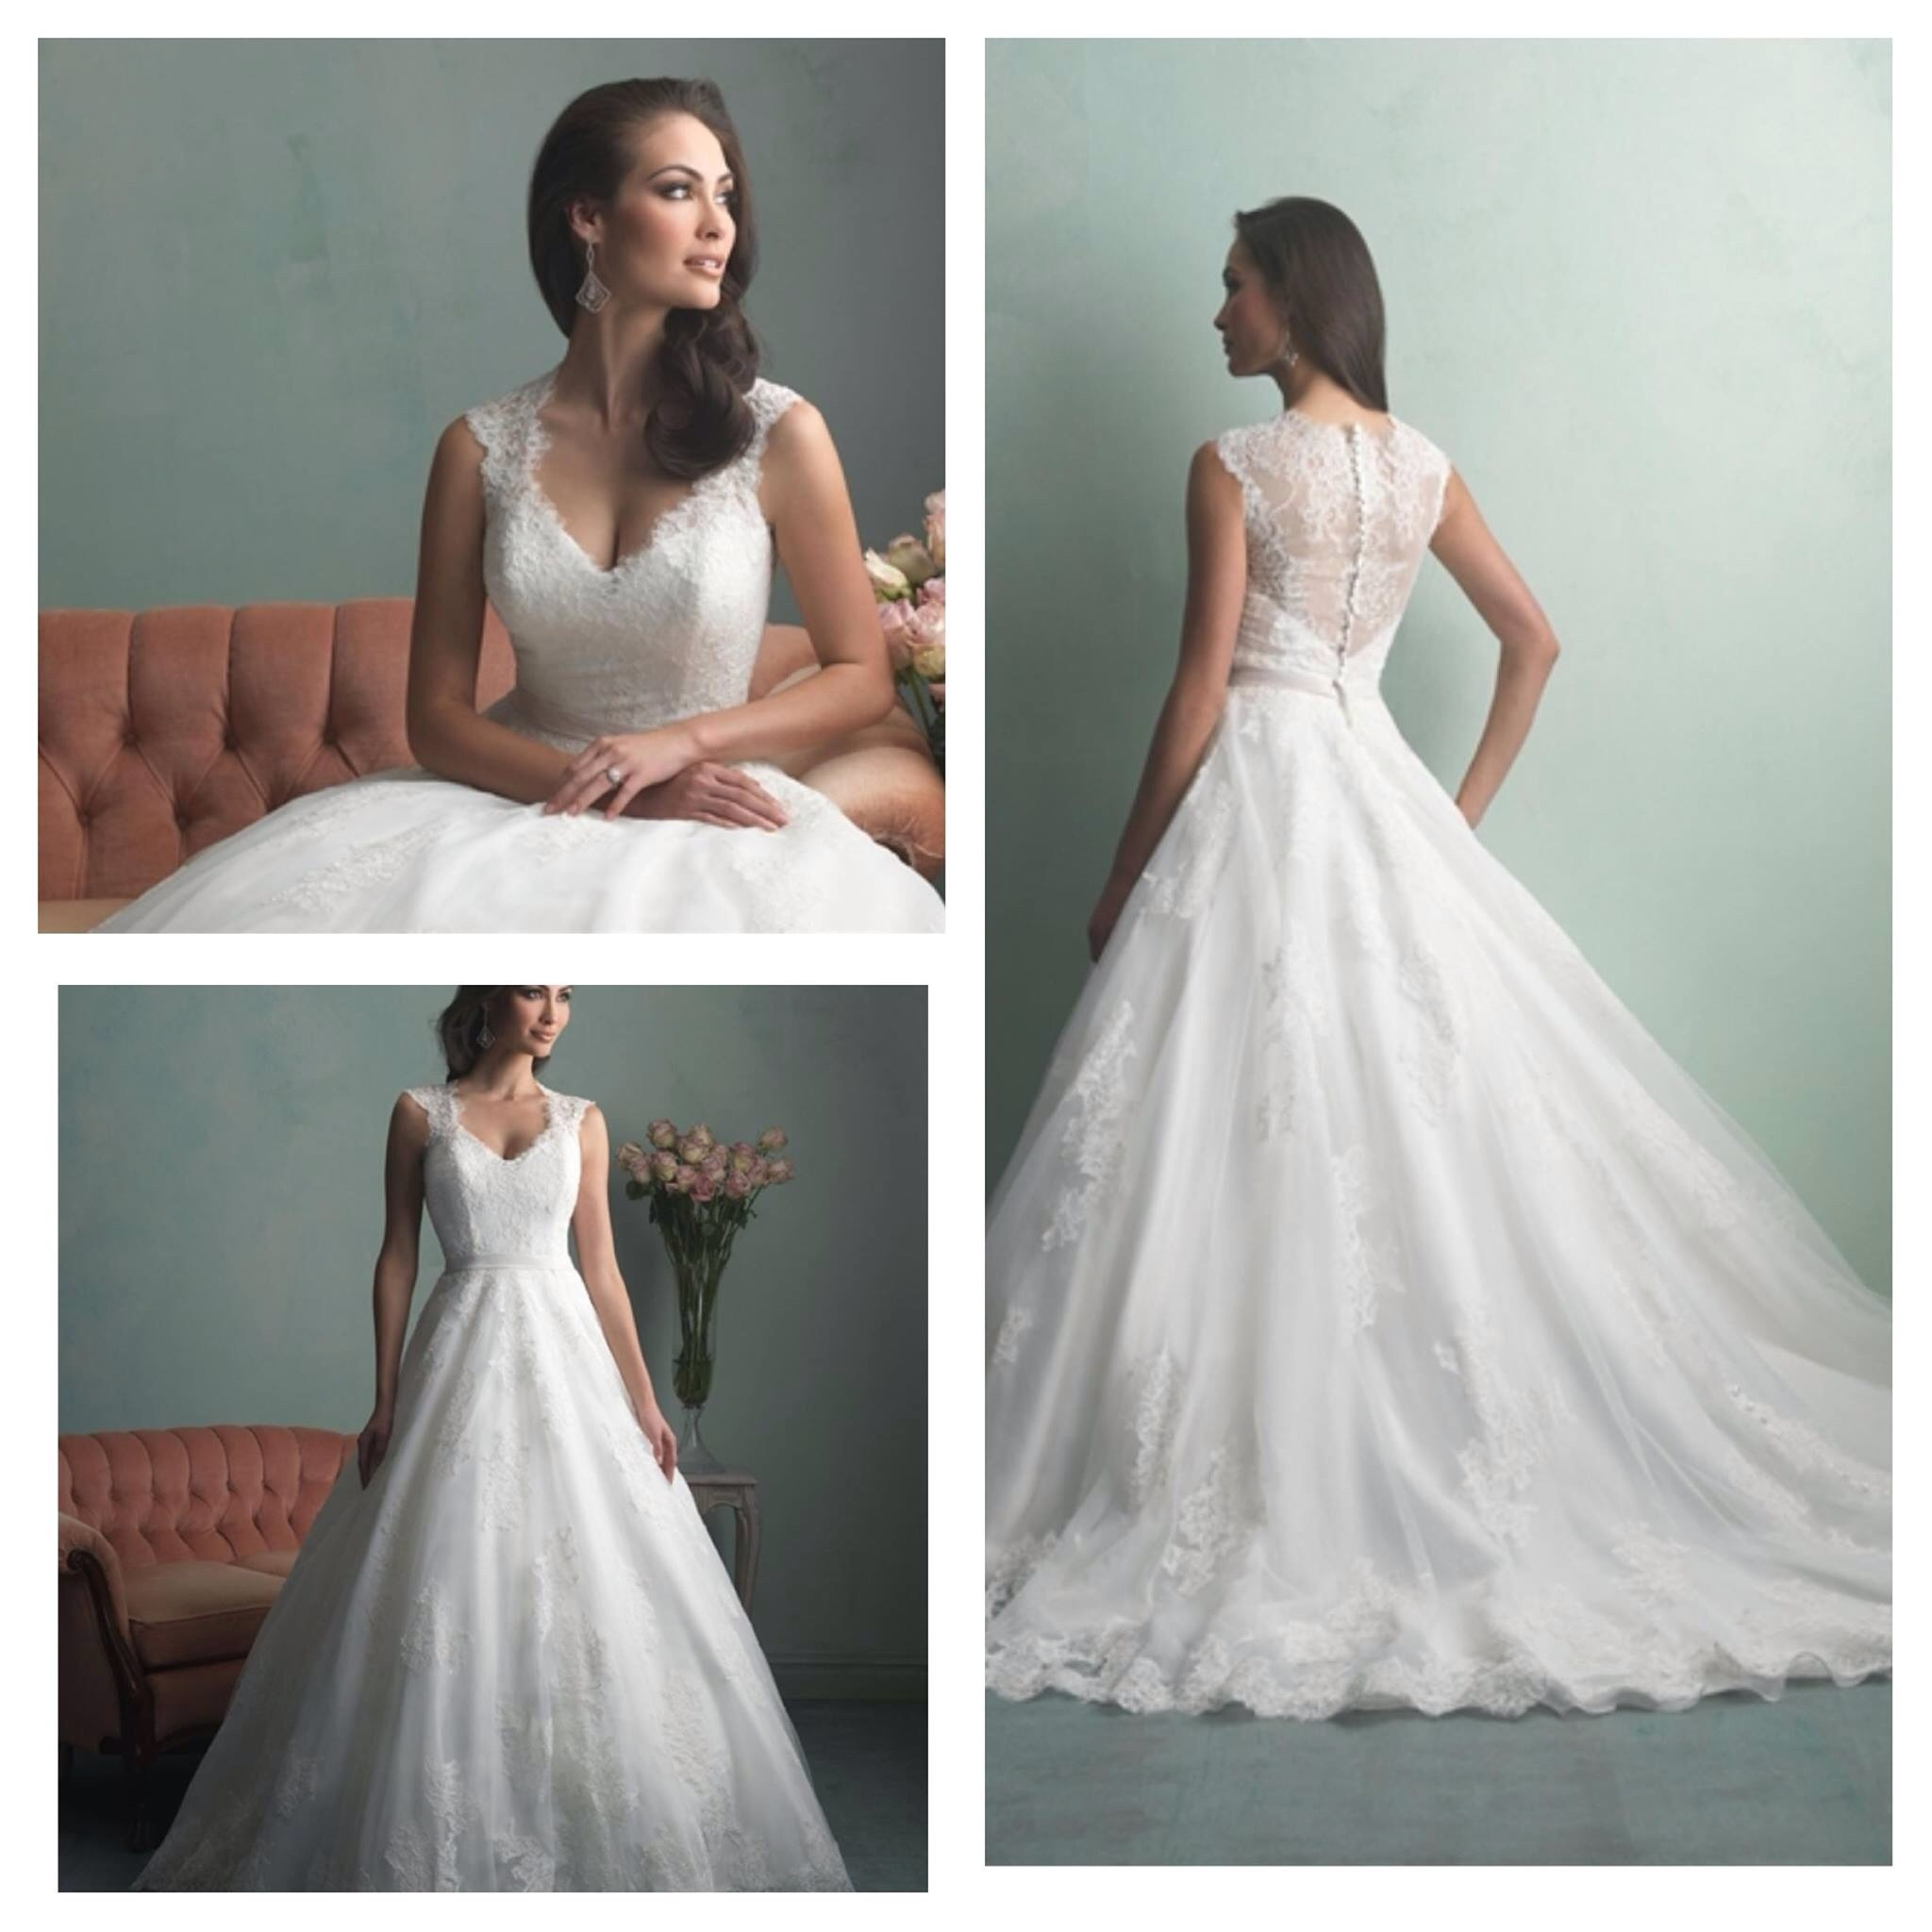 Lori G Wedding Dresses : Allure bridal lori g